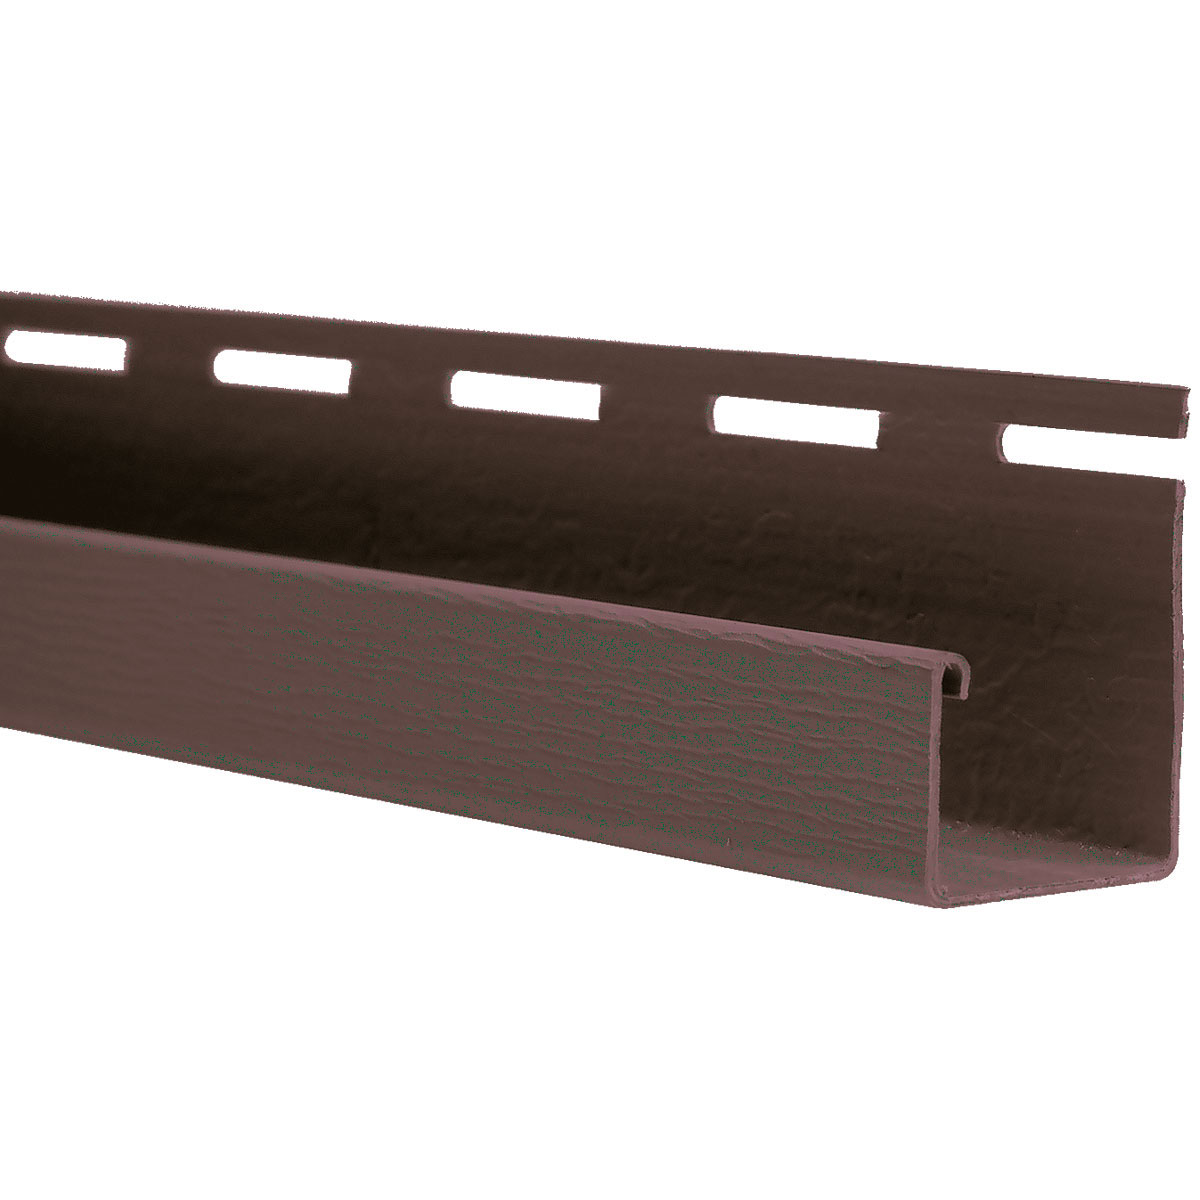 The Foundry 7007248 3 4 Inch W X 90 Inch L J Channel For Use